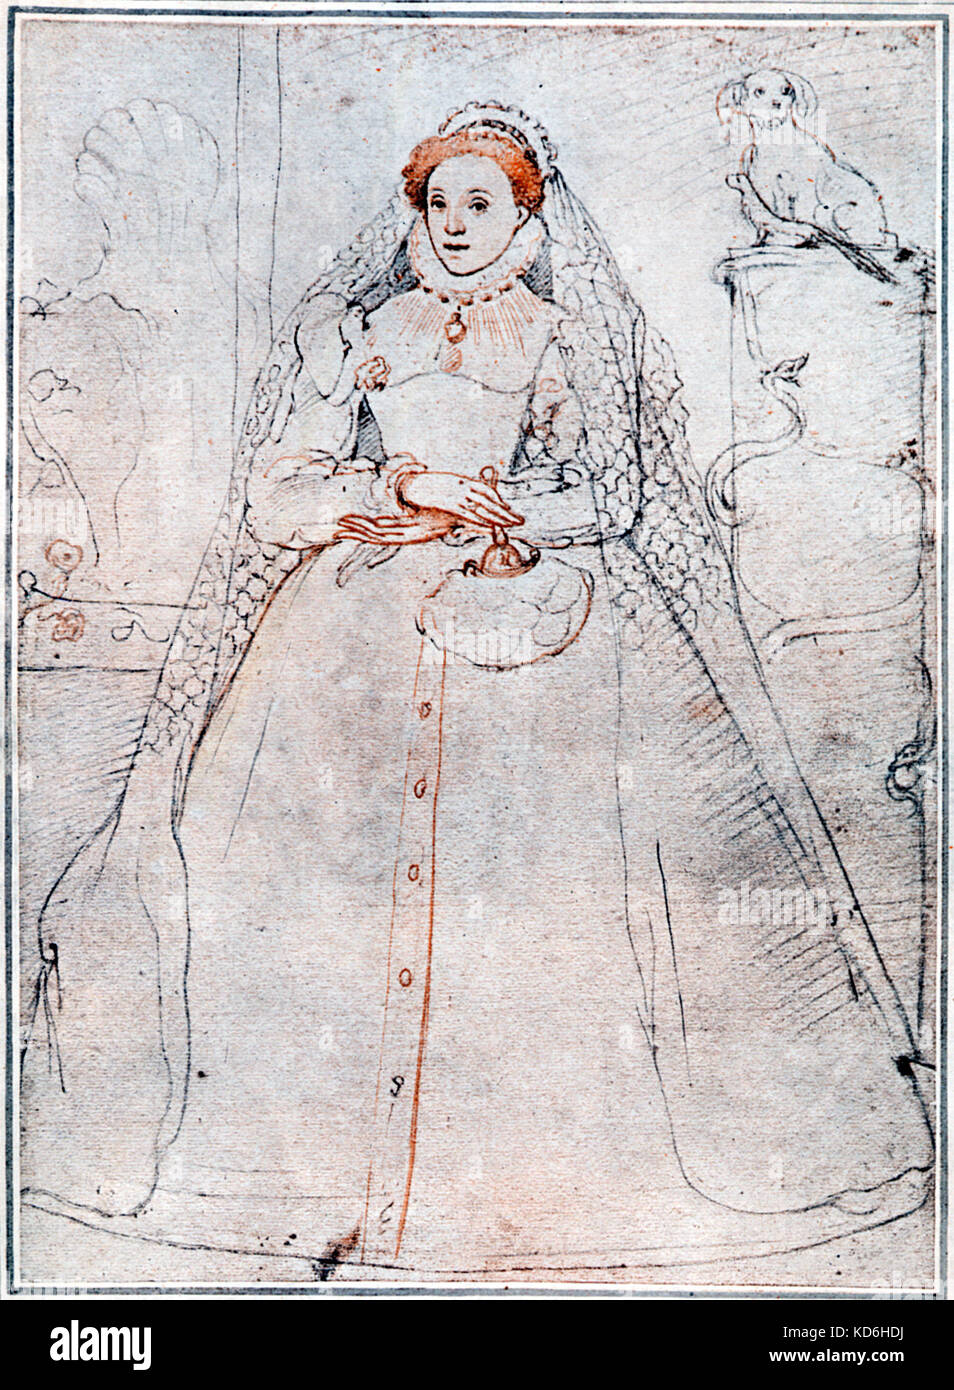 Queen Elizabeth I after  an original crayon drawing by F. Zuccero,  London 1575. Queen of England, 1533-1603. Stock Photo